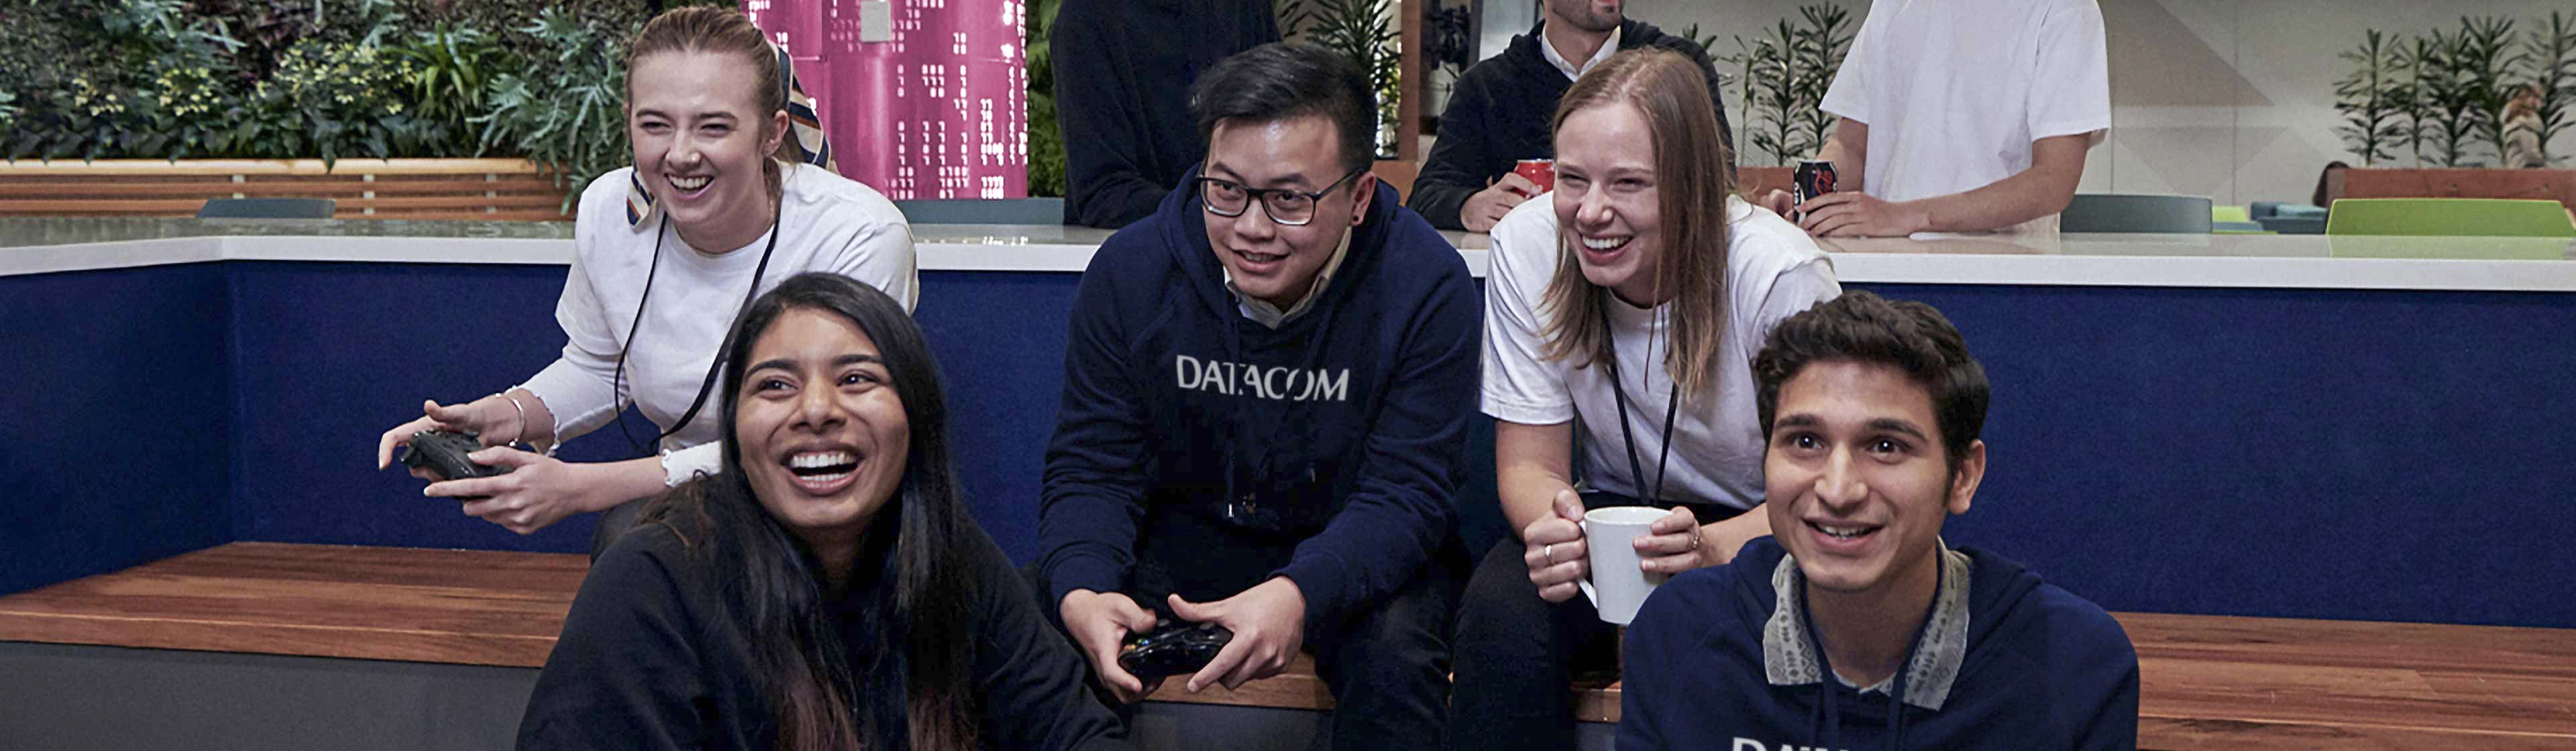 Datacom people playing games at the Datacom office in Auckland